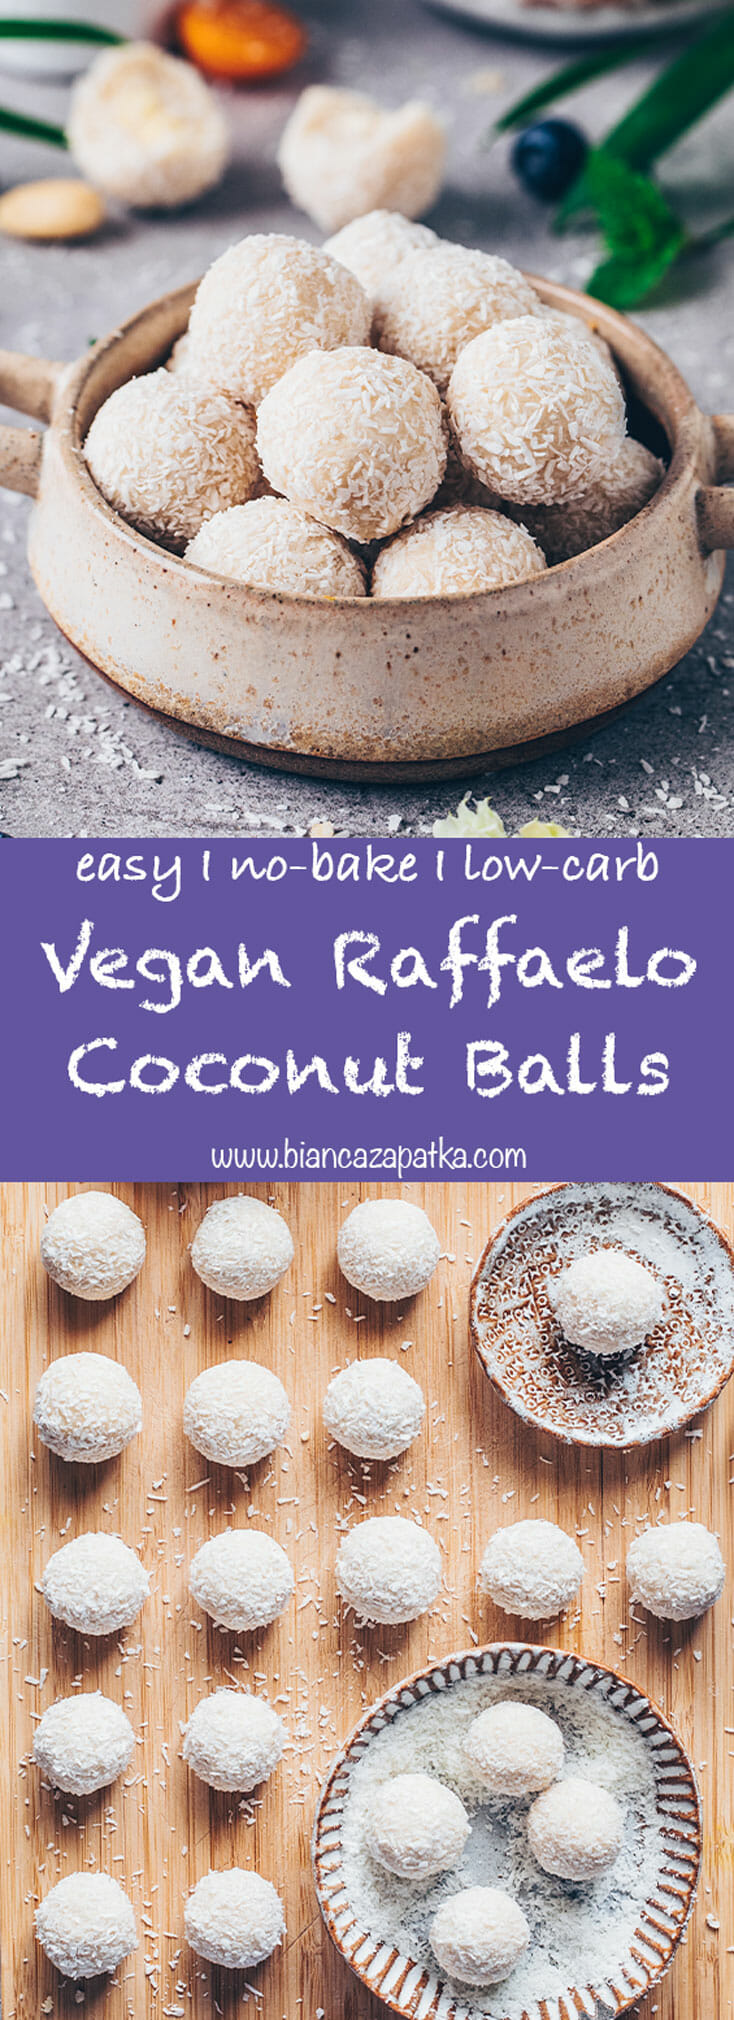 Vegan Raffaelo Coconut Balls (healthy, easy, low-carb, paleo)